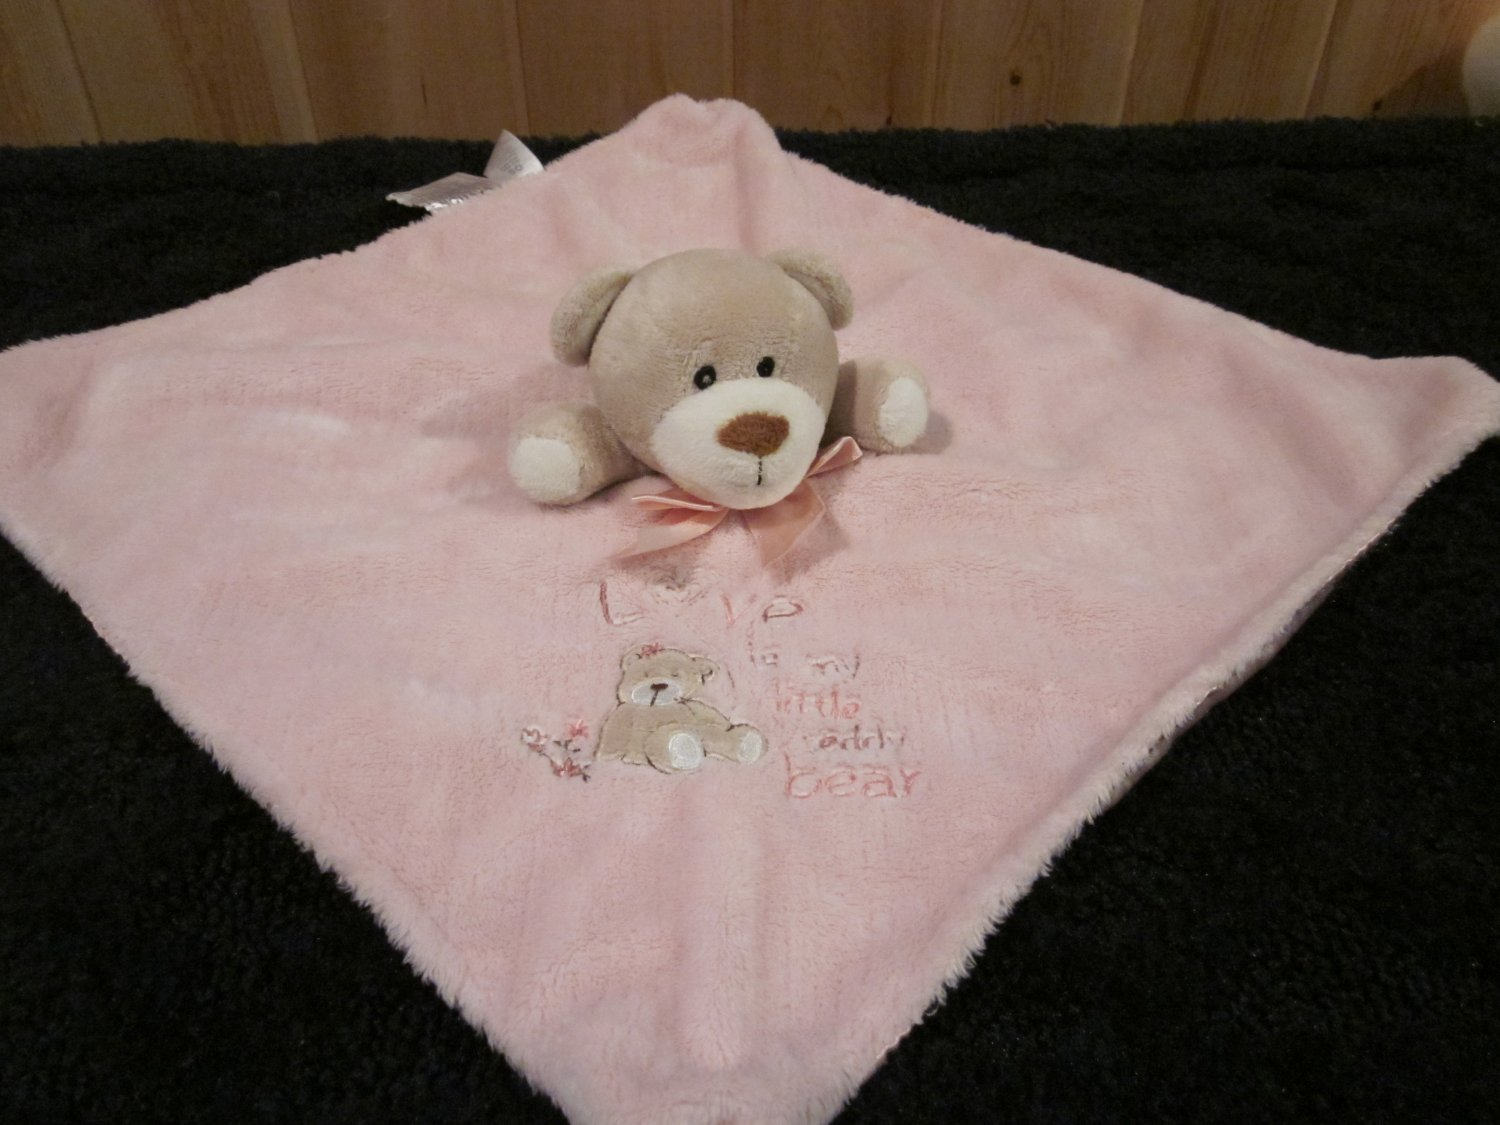 Carters OS Pink Security Blanket with Tan Bear with Love is my Little Teddy Bear